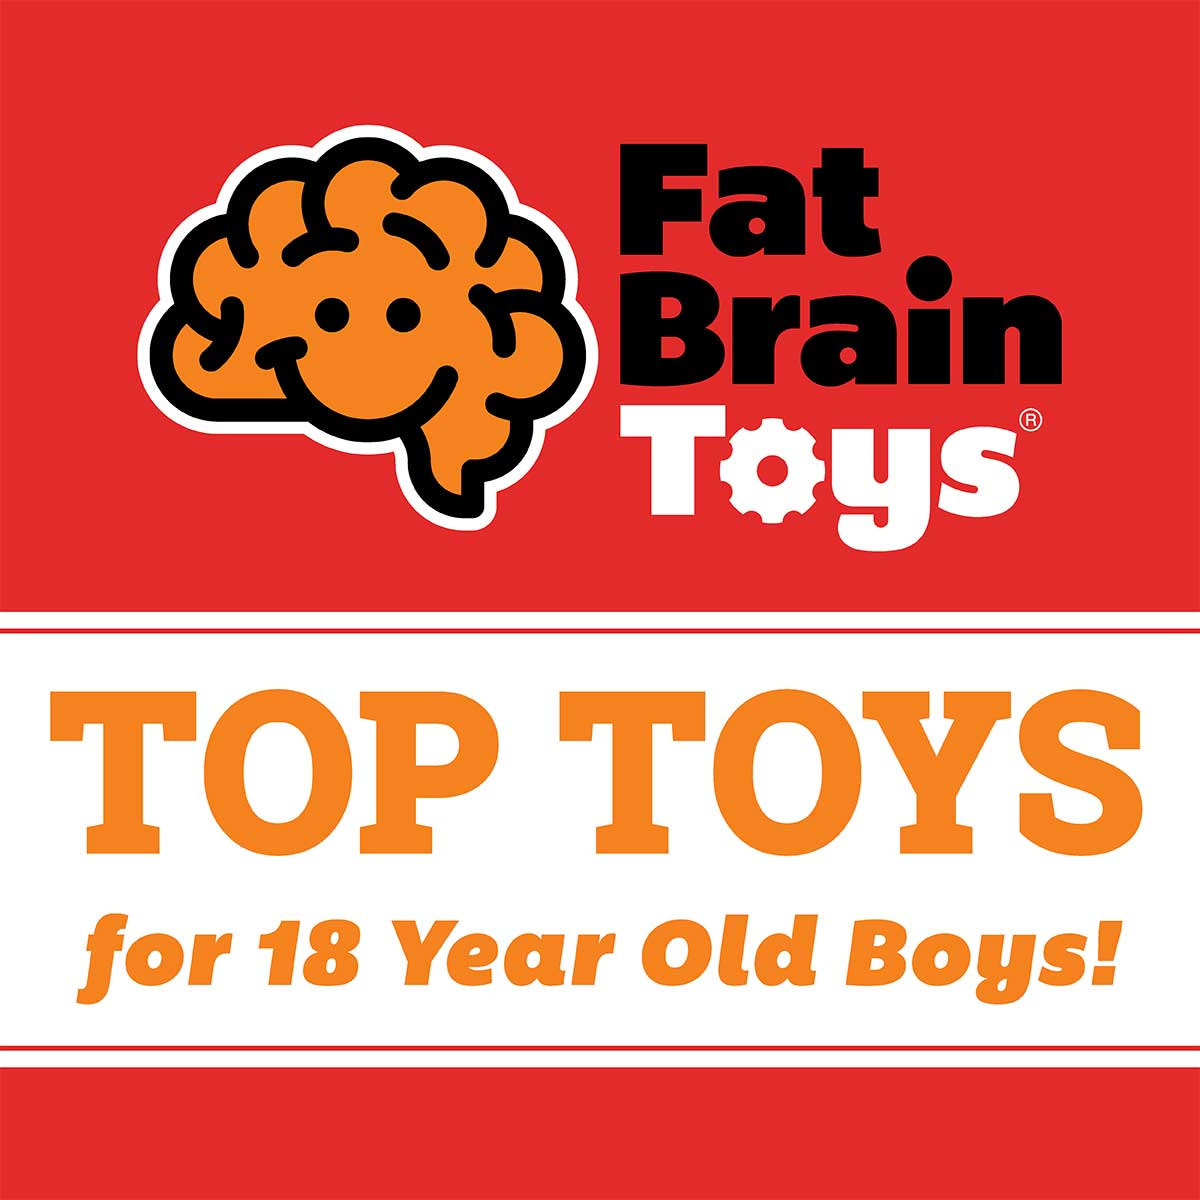 Christmas Gifts For 18 Year Old Boy: Best Toys For 18 Year Old Boys